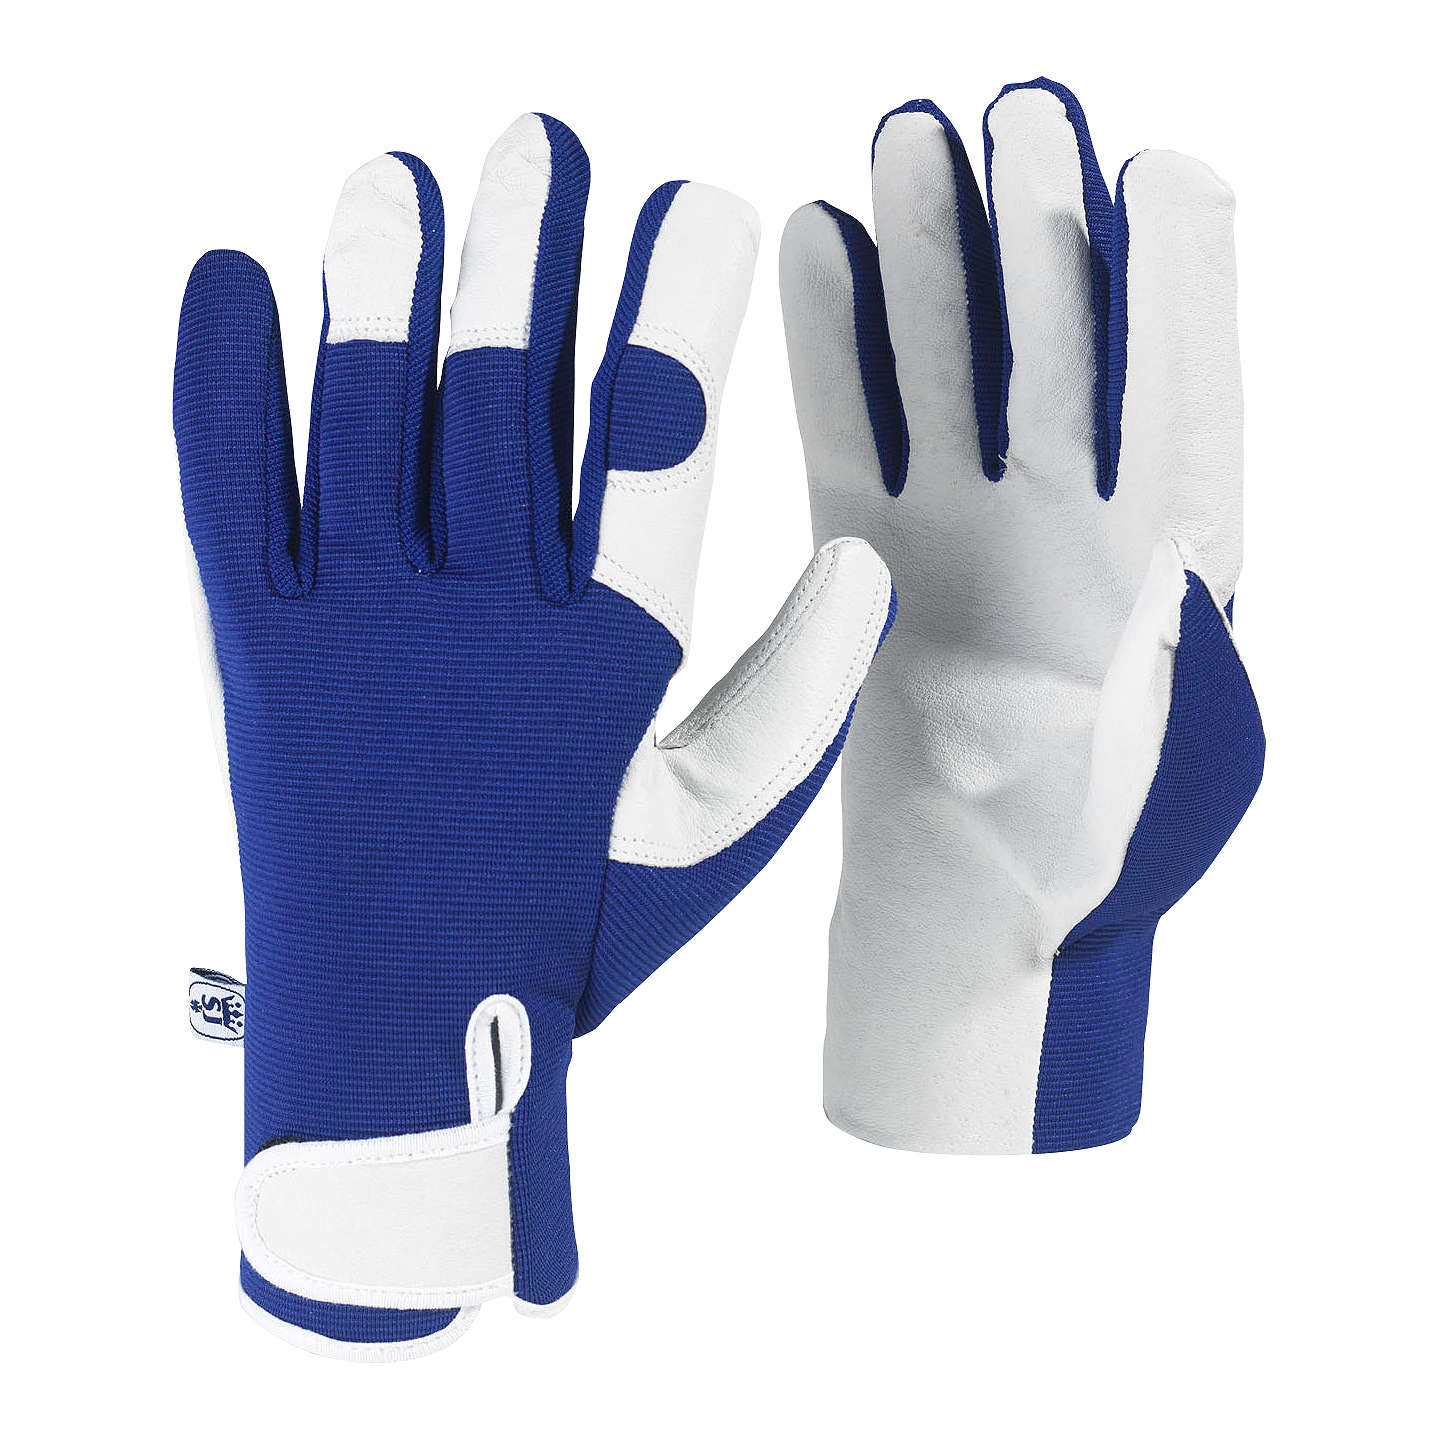 BuyKew Gardens Gardening Gloves, Blue, Medium Online at johnlewis.com